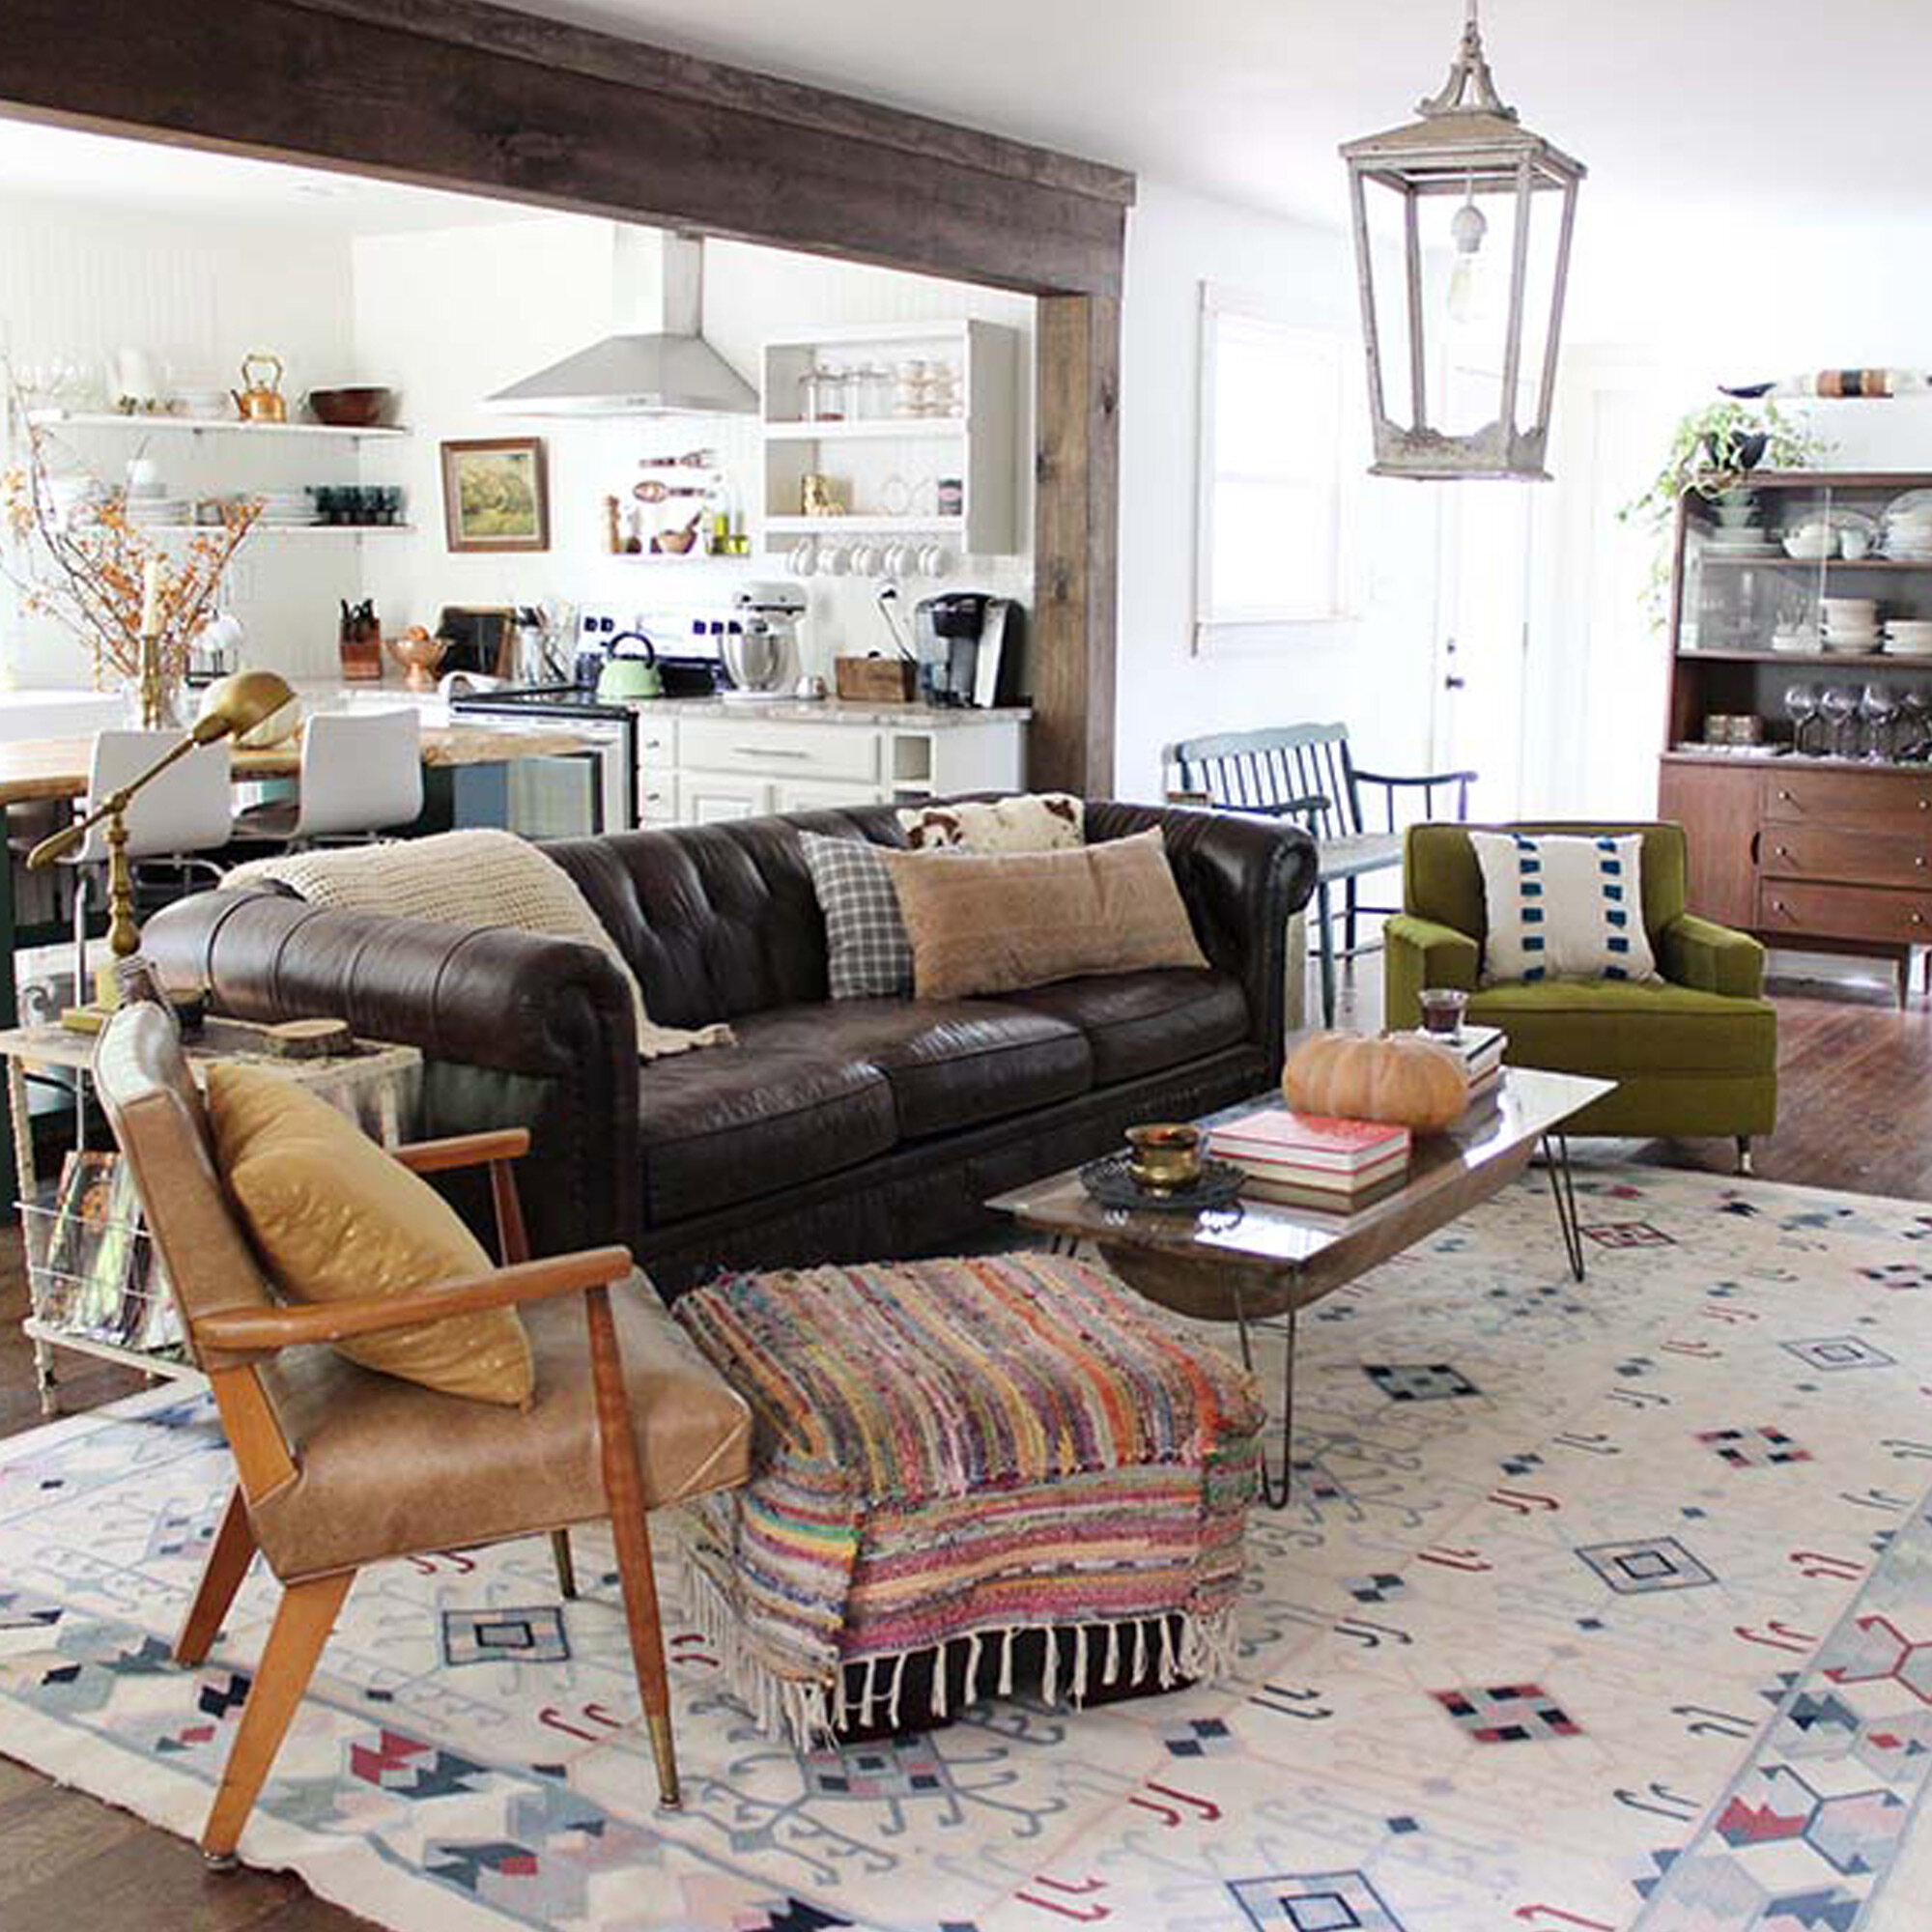 A Modern Farmhouse With A Boho Twist Allmodern